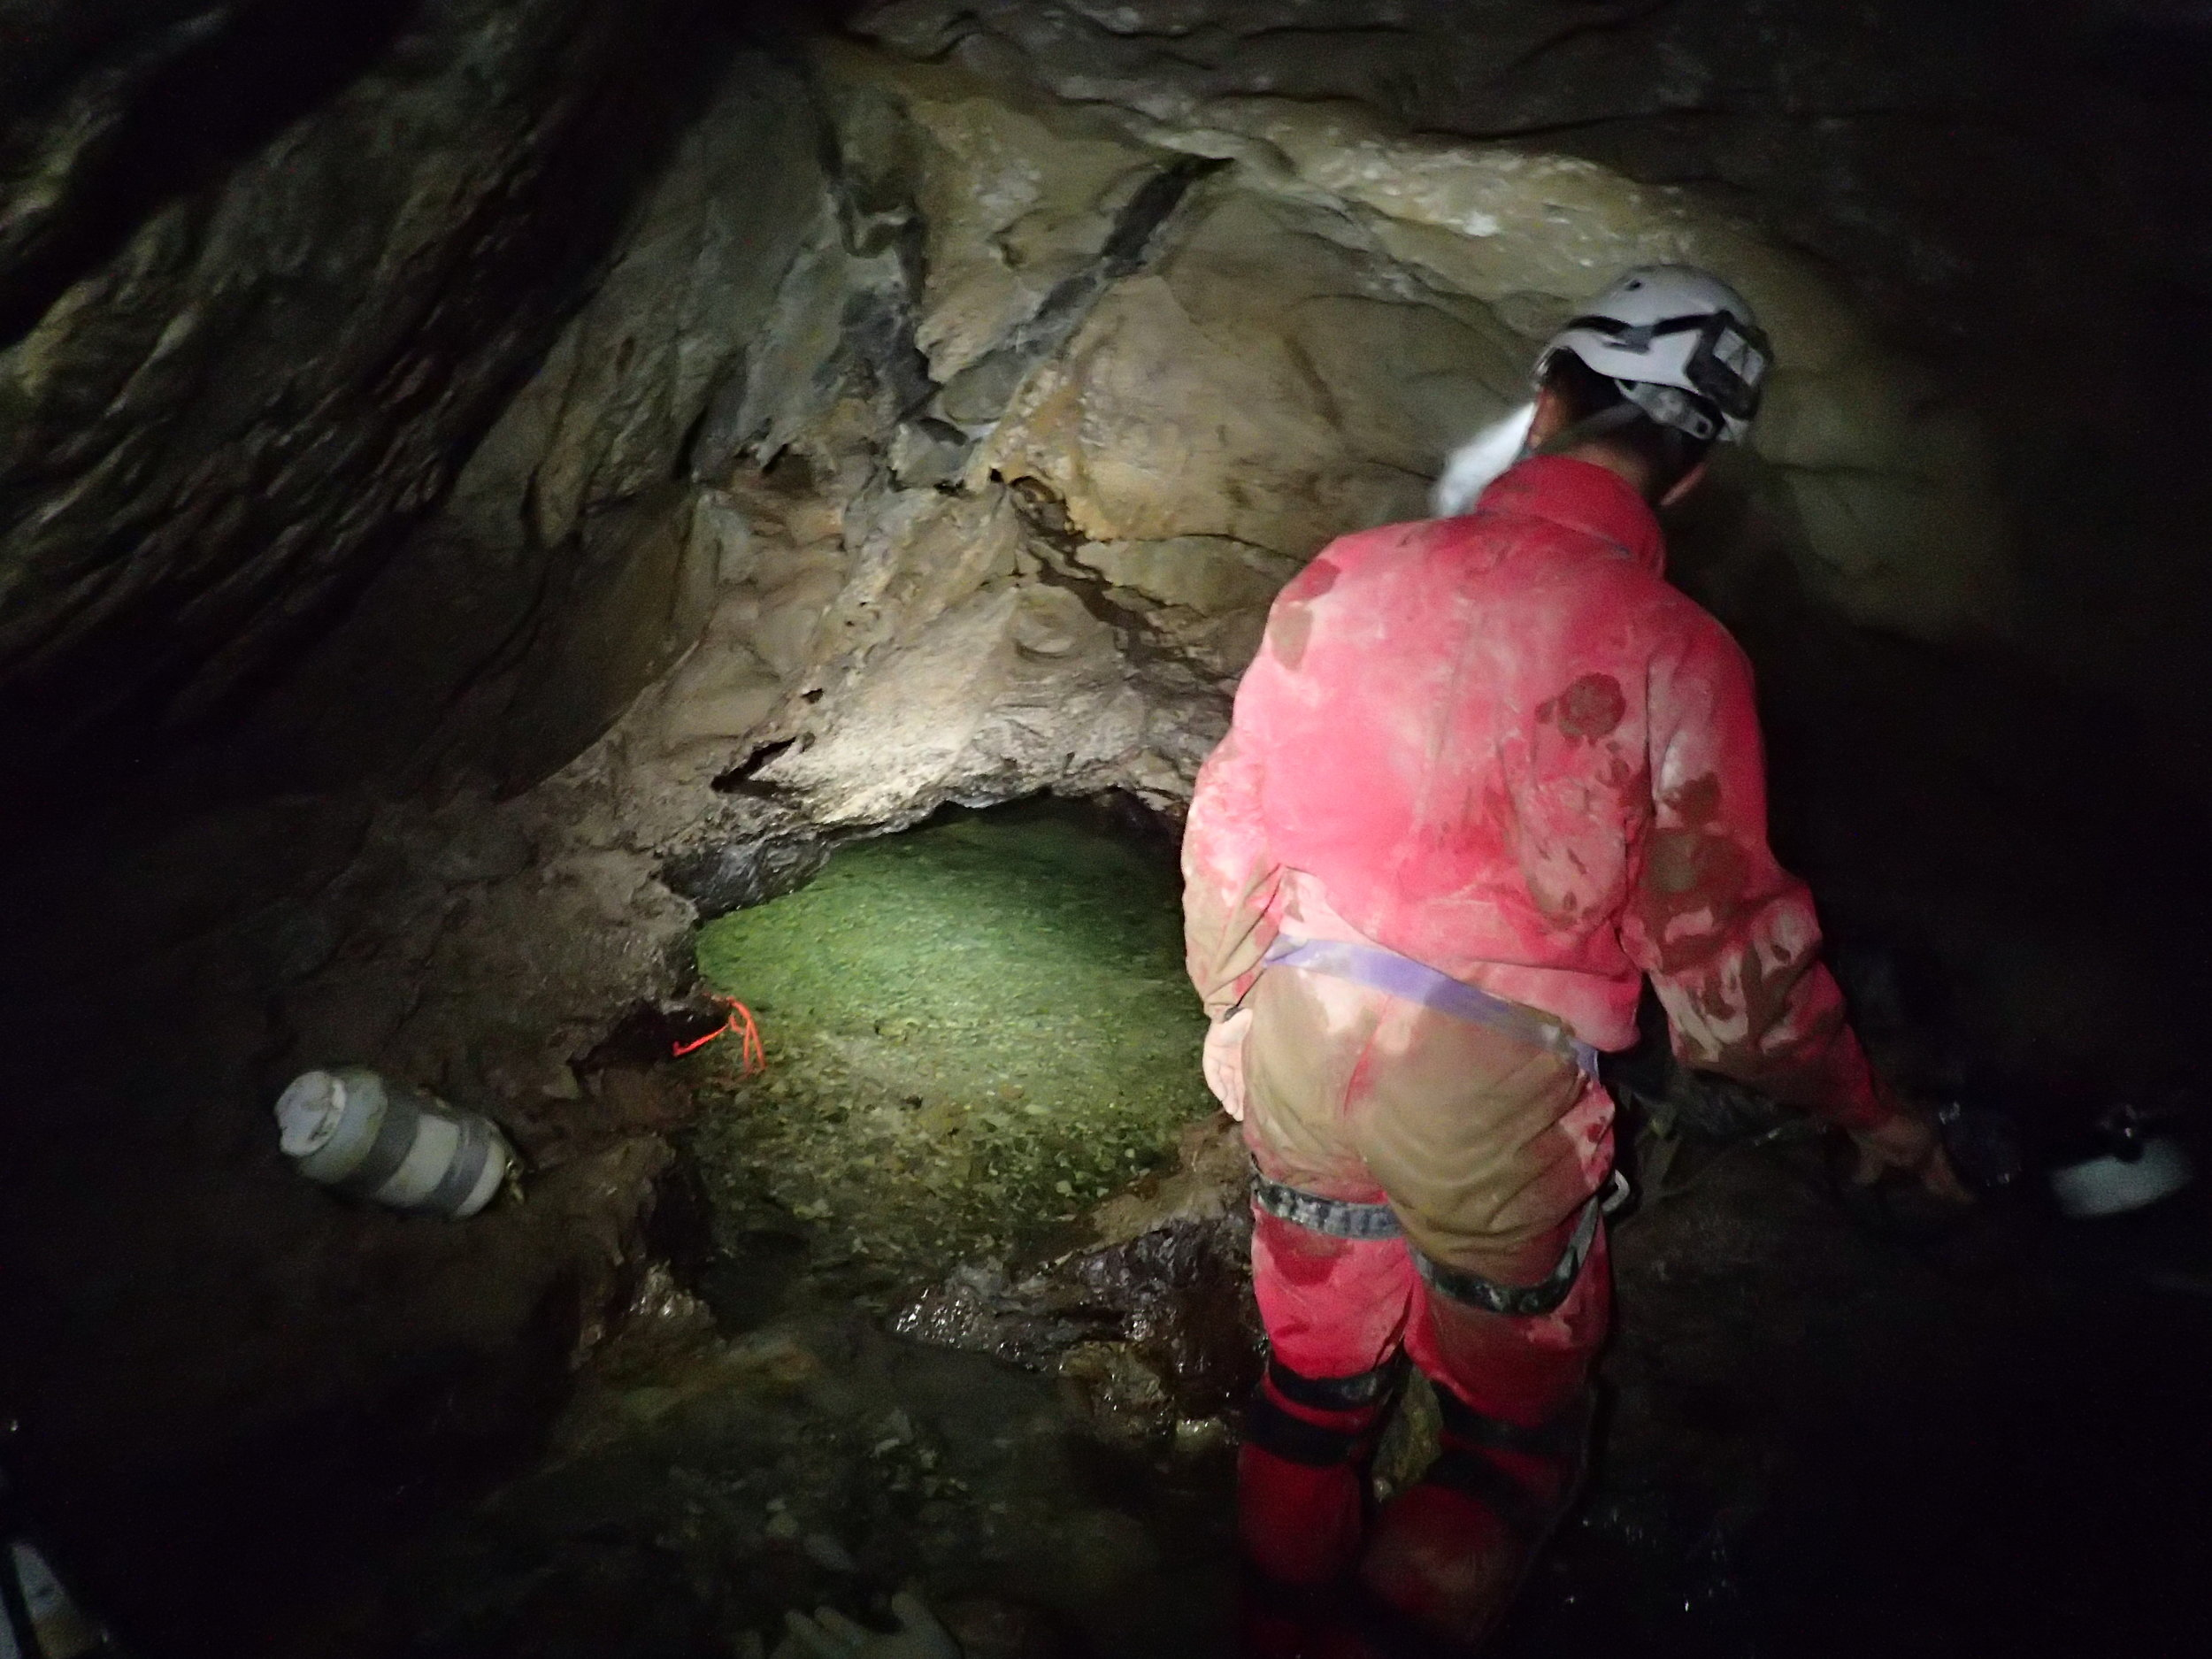 Jason Richards looks into Sump 1 at Whistling Cave, BC